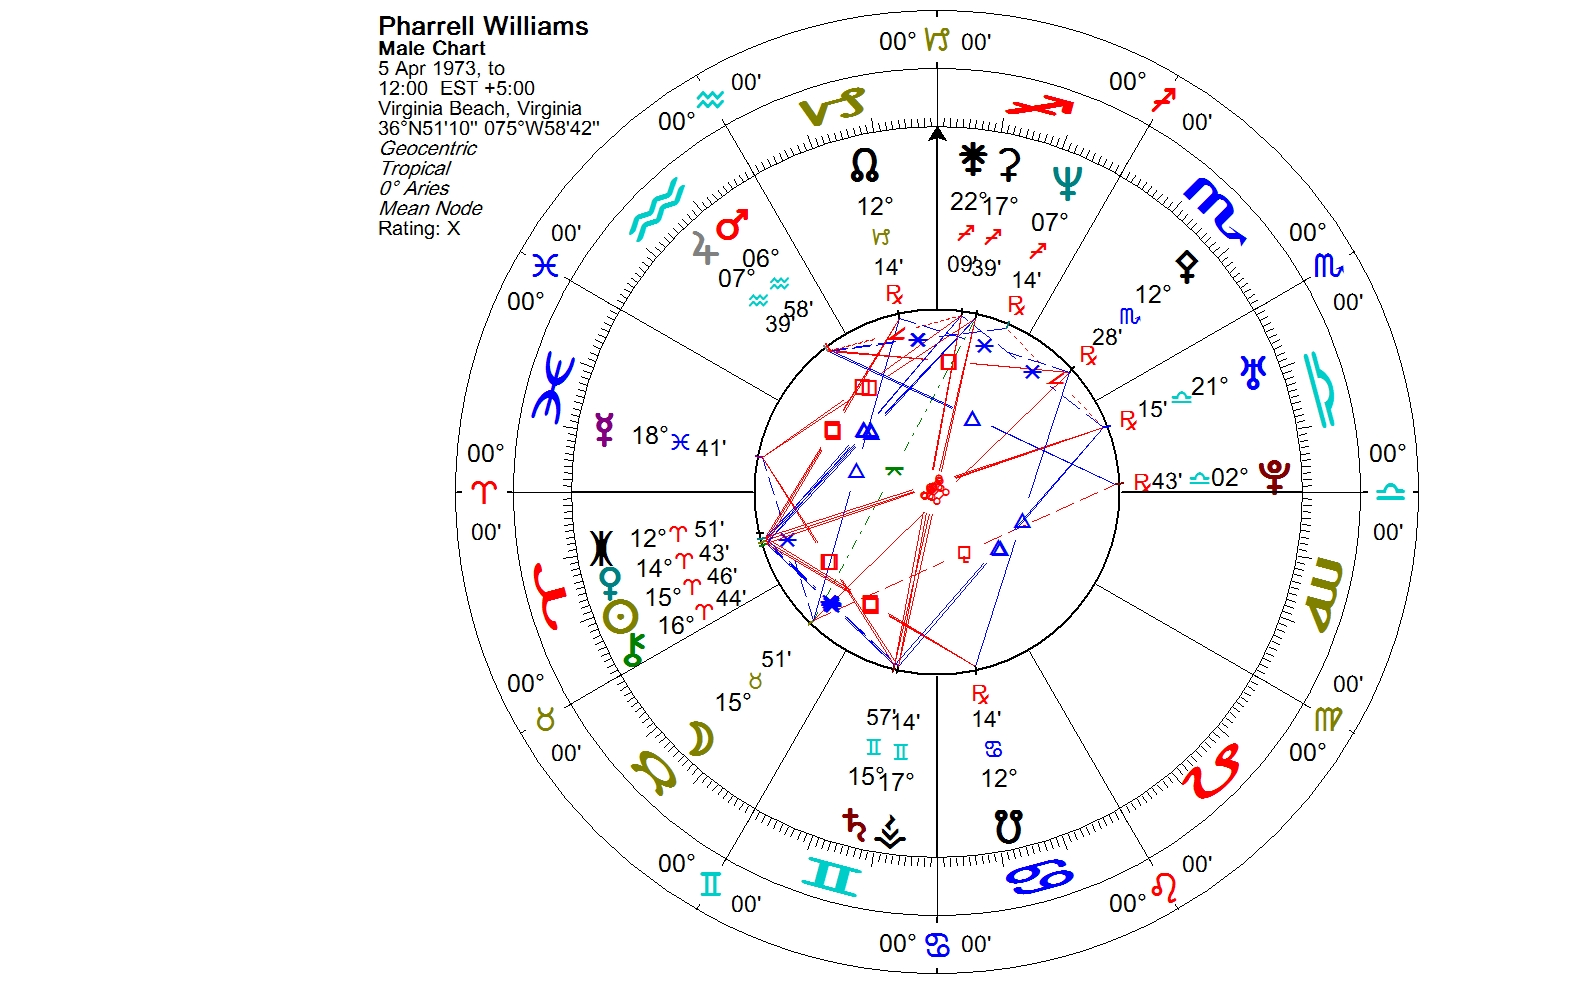 Lunations by Kirsti Melto » Birth chart for Pharrell Williams